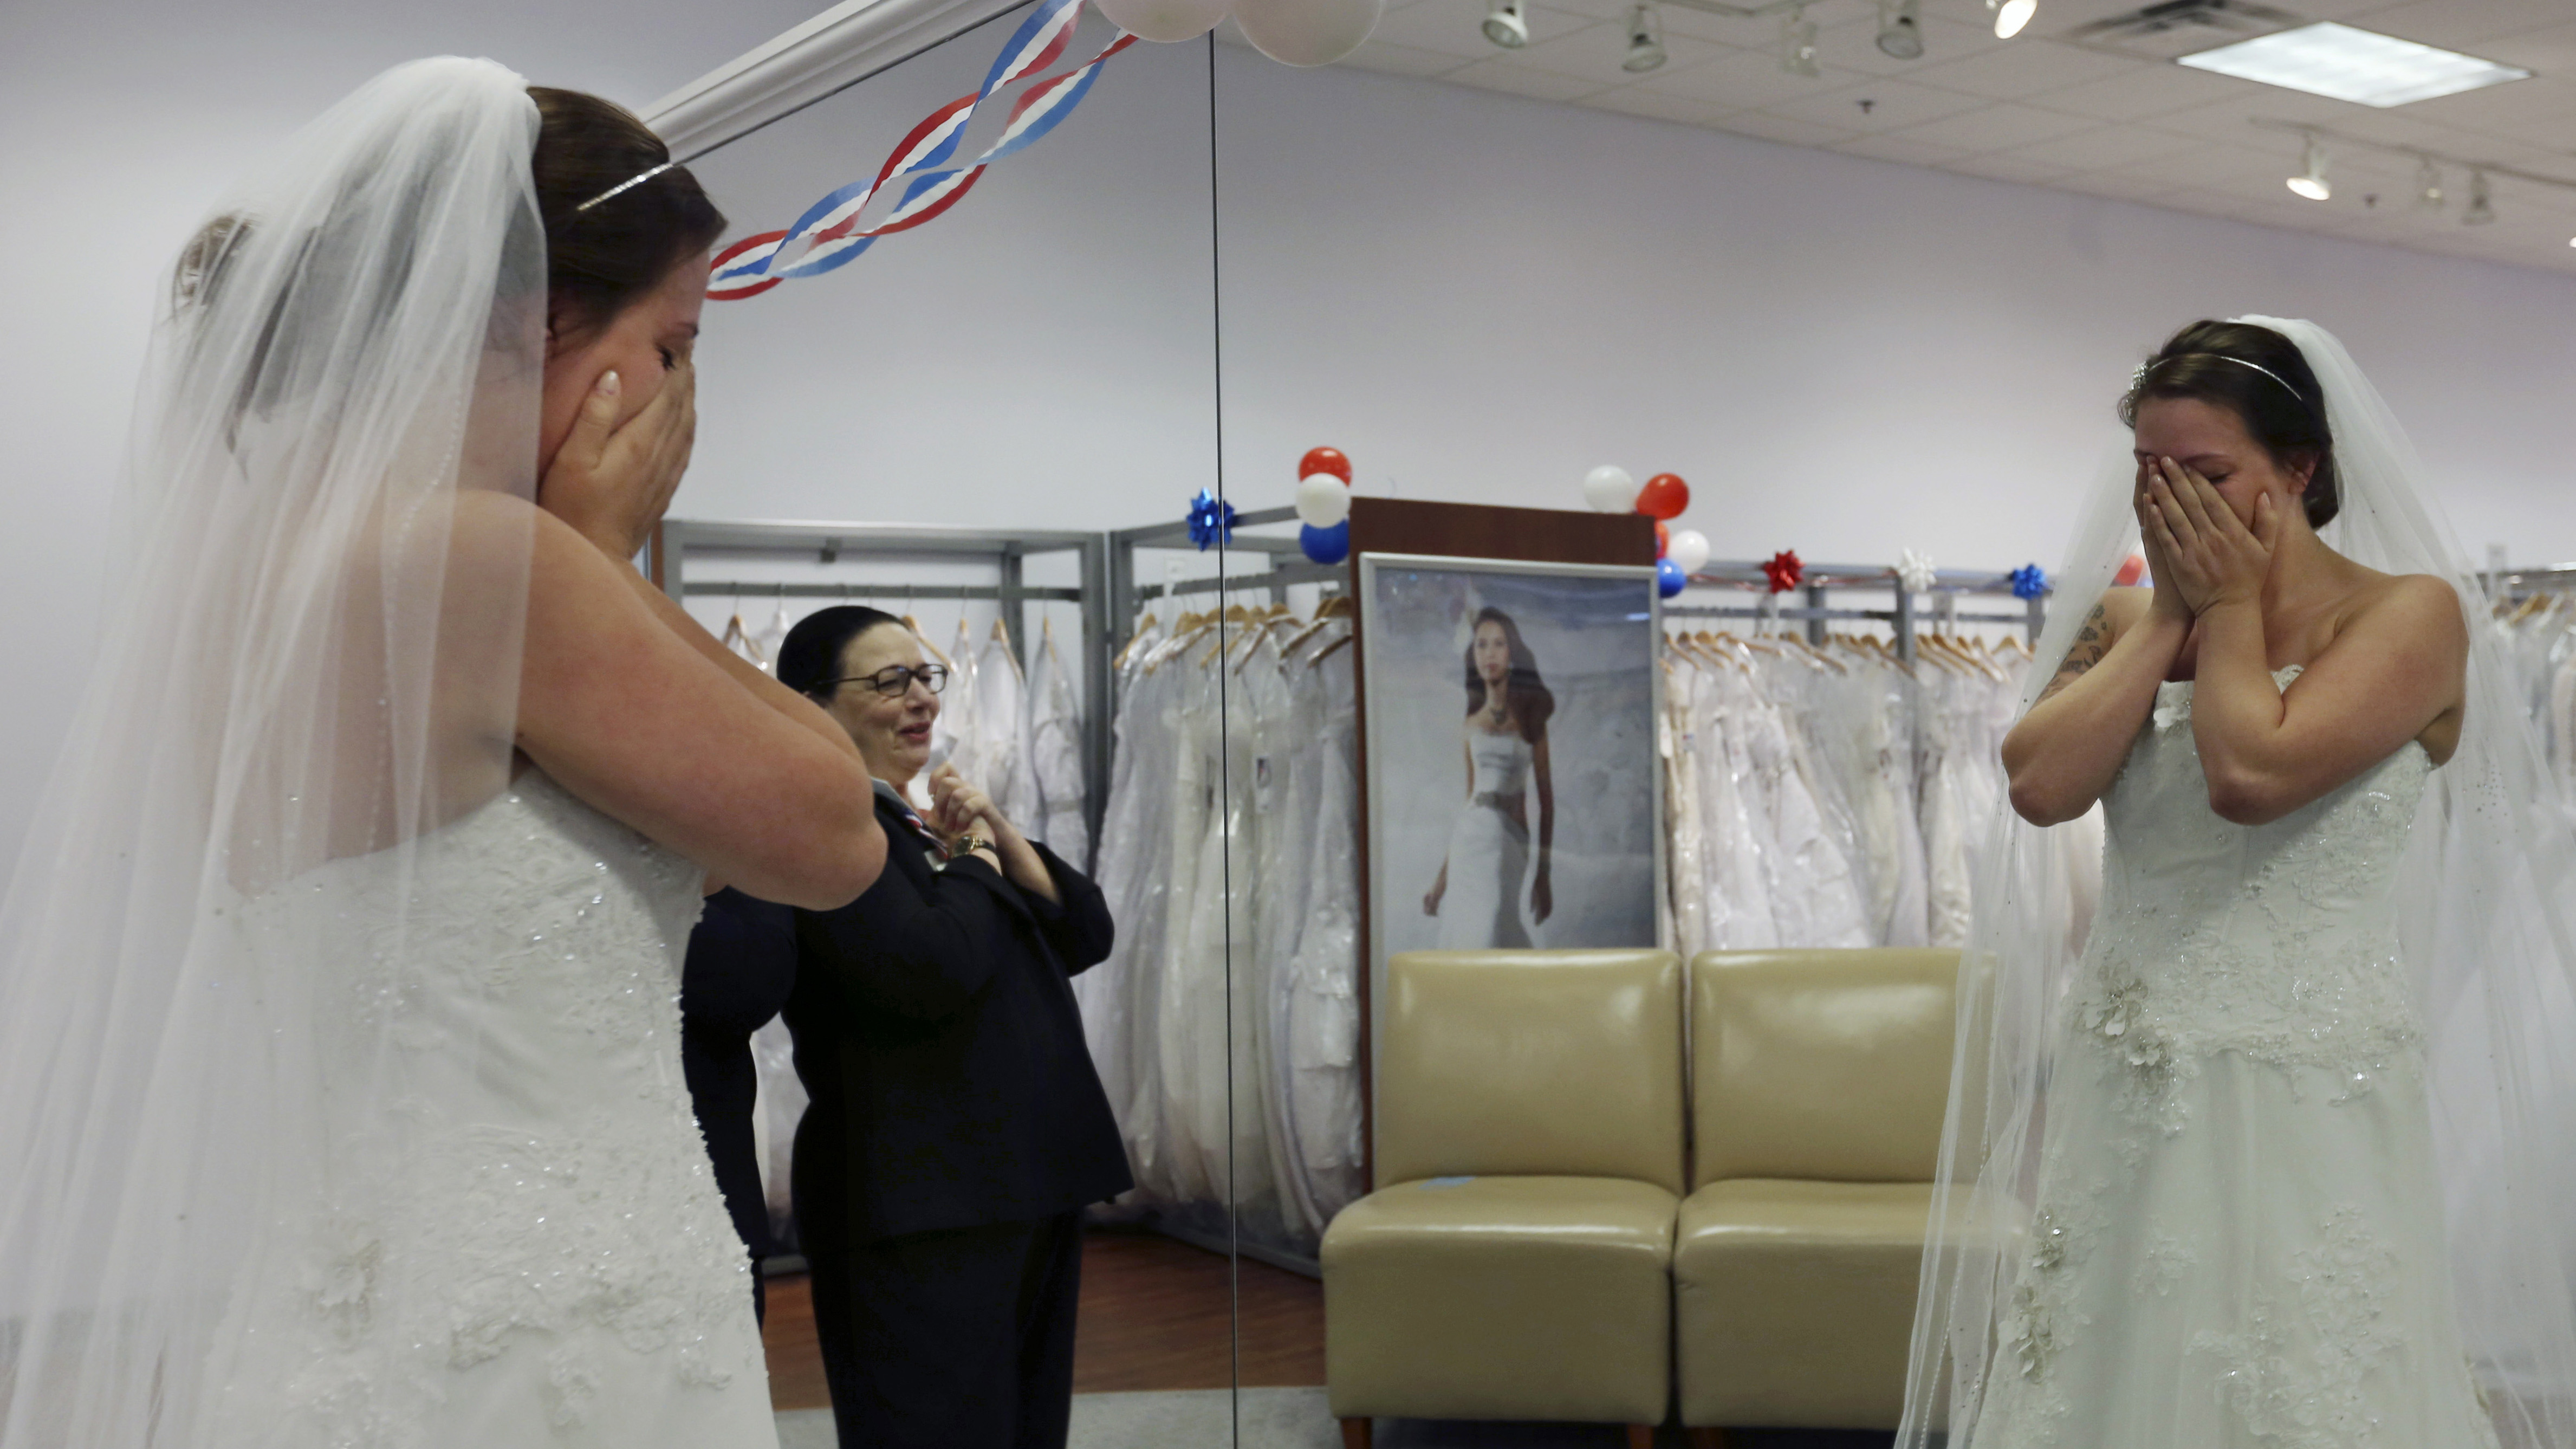 Store employee Jo Acchione, left, stands near as former Army National Guard member, Jennifer Dunn, is overcome as she chooses a wedding gown at Alfred Angelo Bridal, Wednesday, Nov. 11, 2015, in Cherry Hill, N.J. The company closed all of its stores on Thursday and filed for Chapter 7 Bankruptcy Friday.